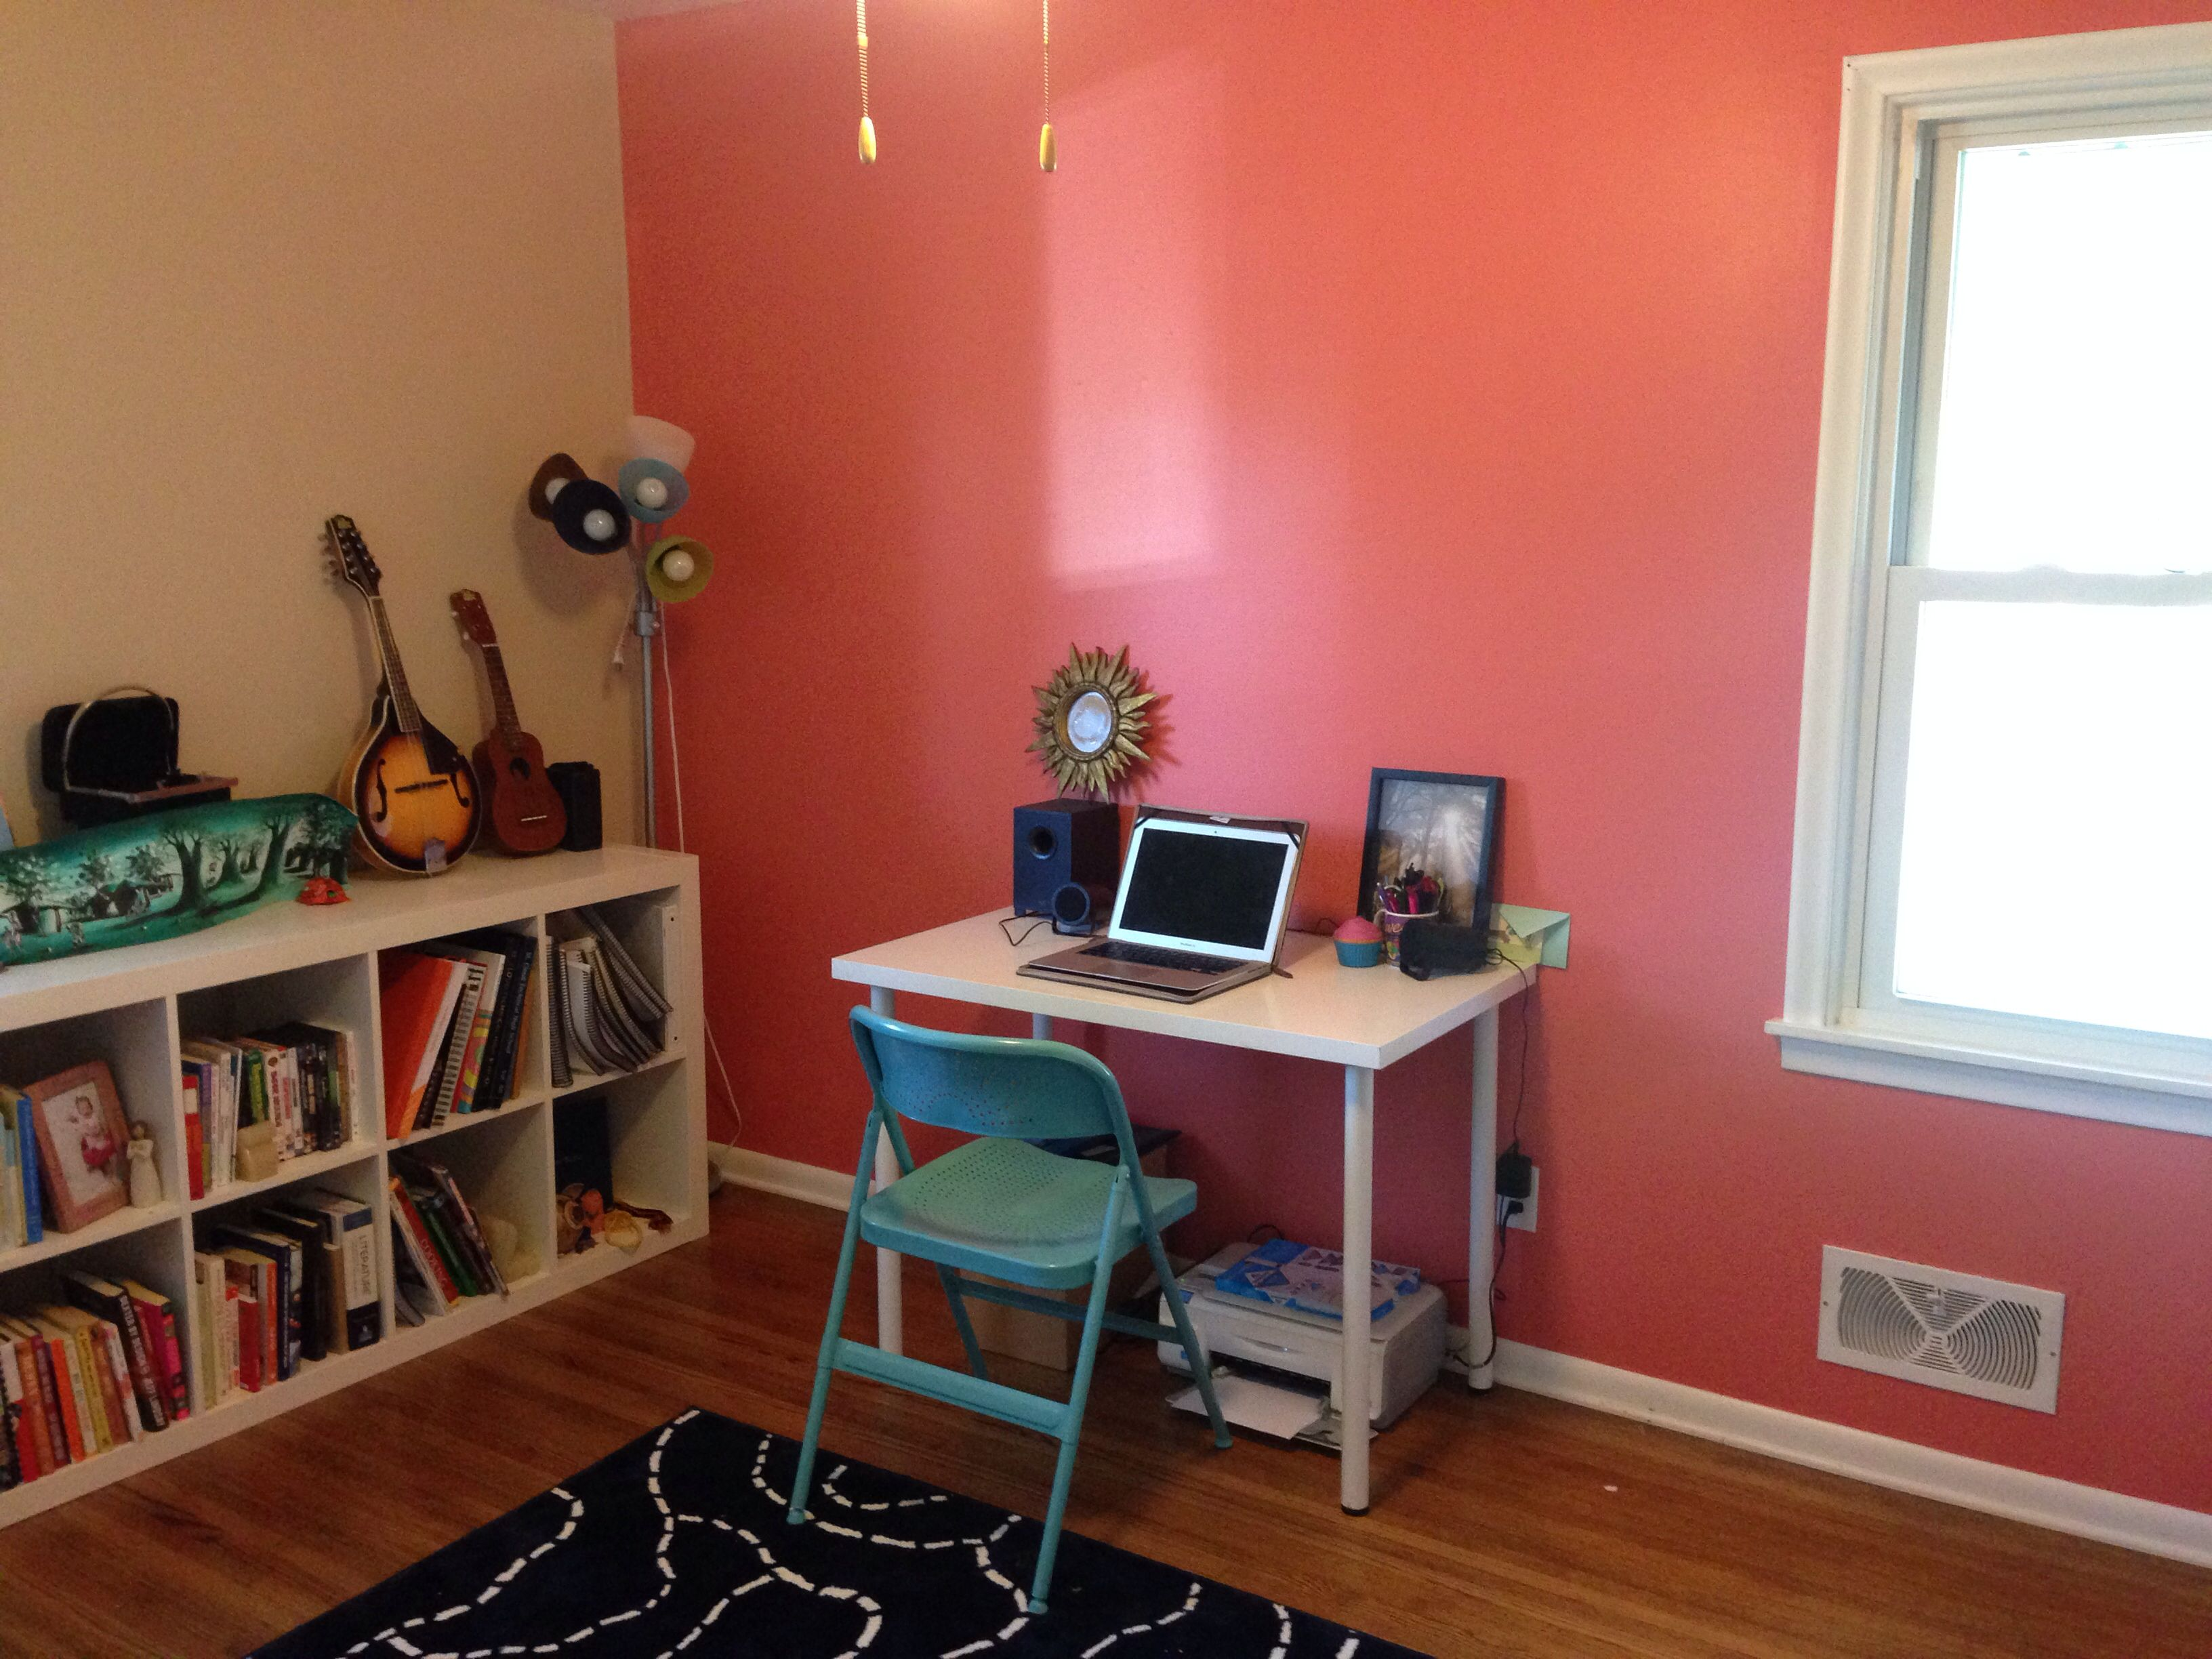 Bedroom Redo Inspiration From The Garden Paint Color Of The